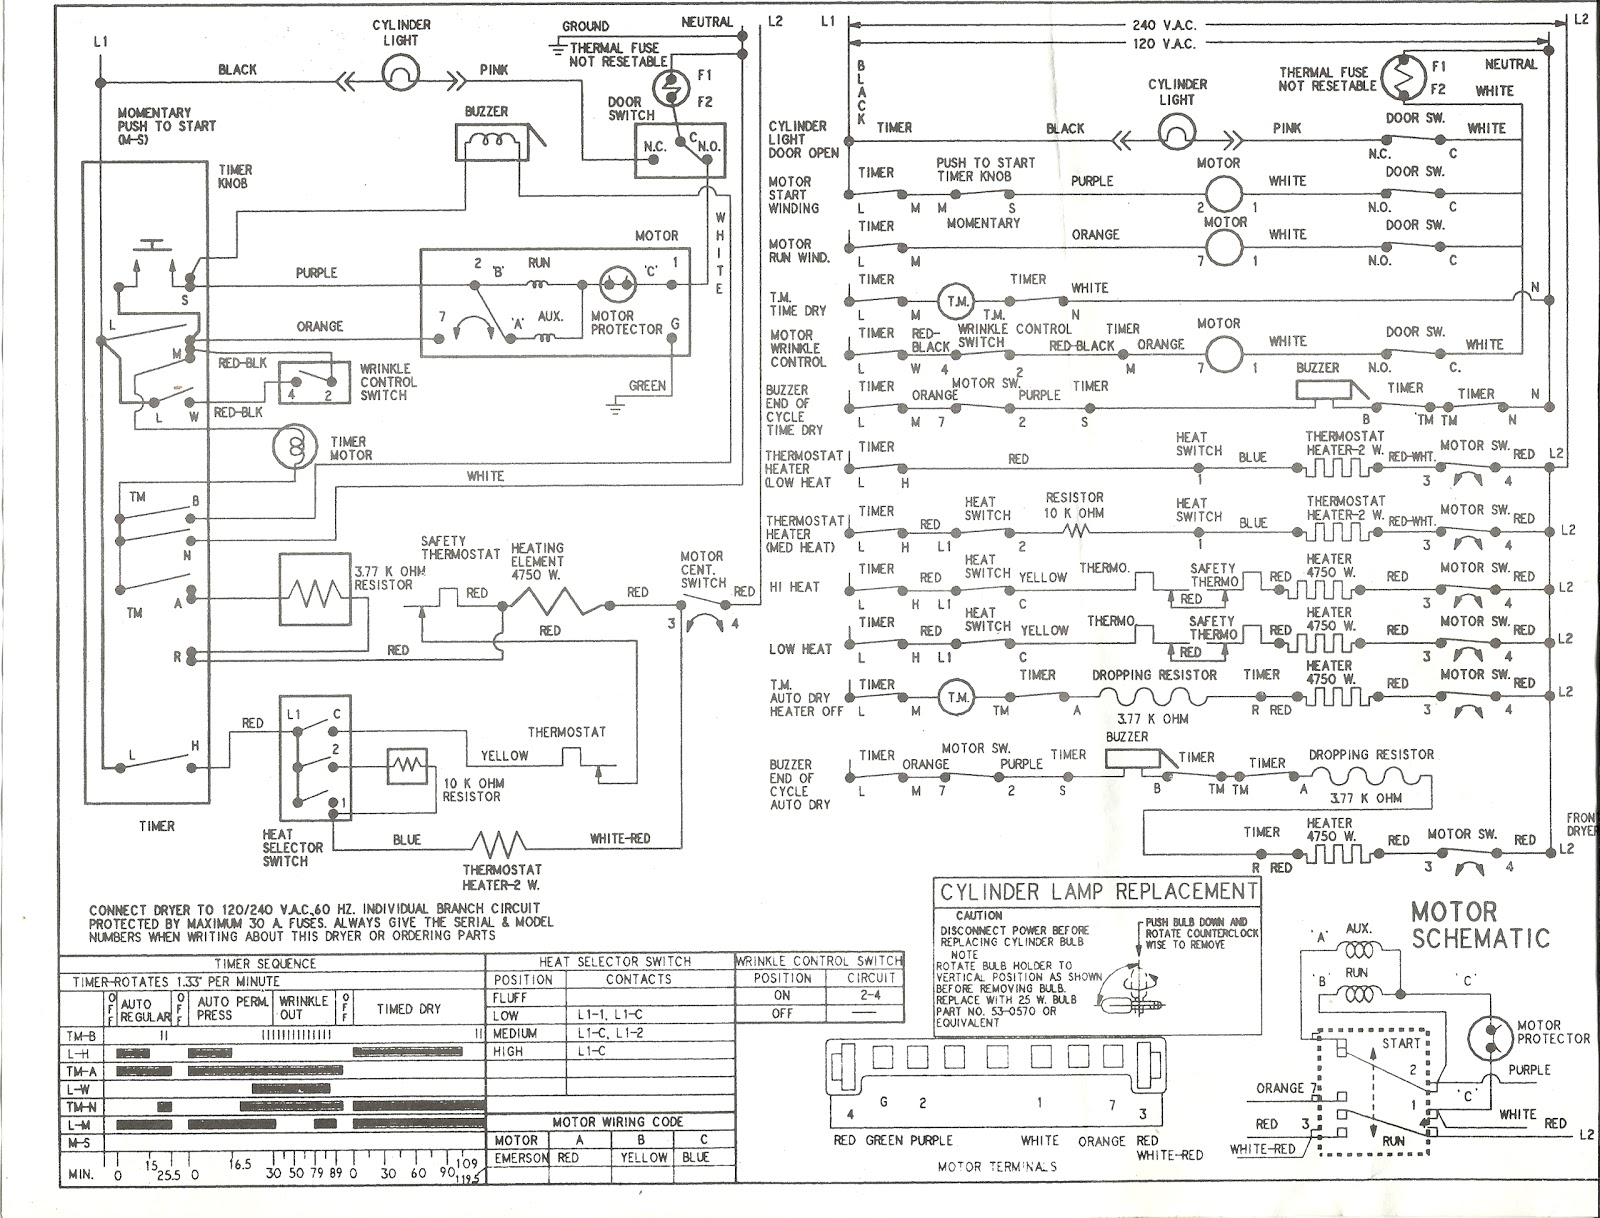 appliance talk kenmore series electric dryer wiring diagram schematic rh blog applianceoutletservice com Basic Electrical Schematic Diagrams Electrician Wiring Diagrams